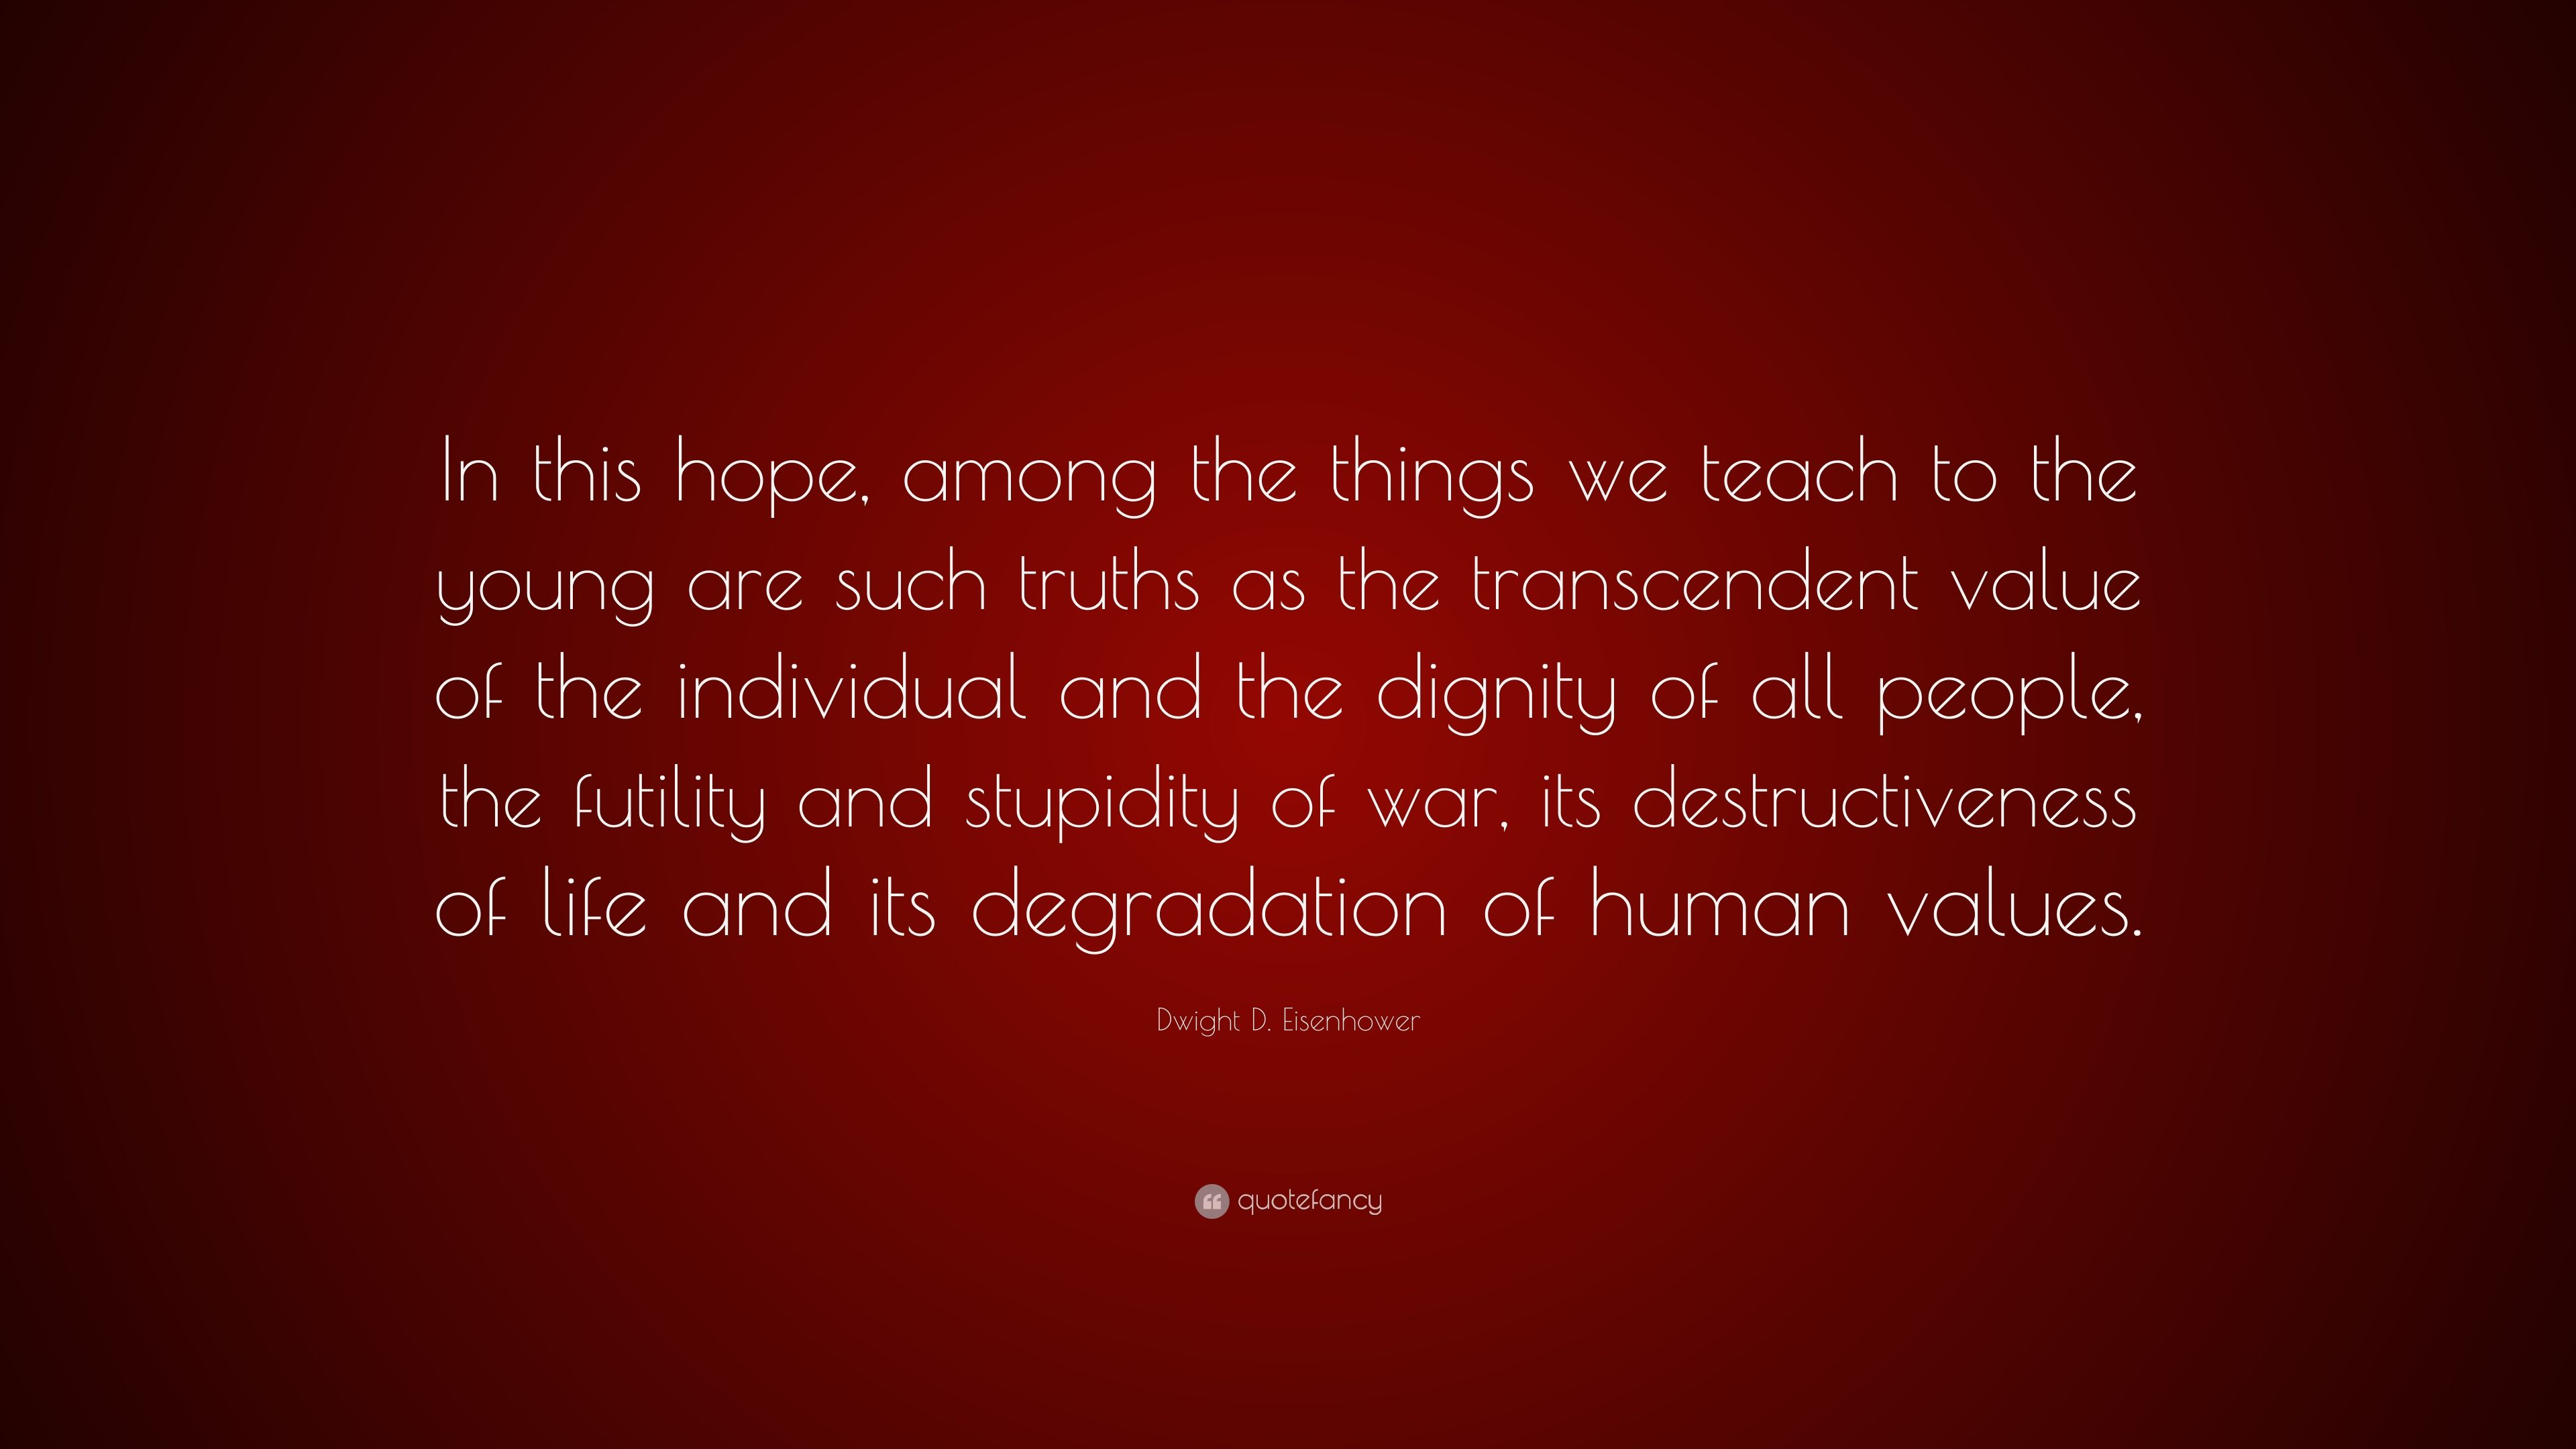 Dwight D Eisenhower Quote In This Hope Among The Things We Teach